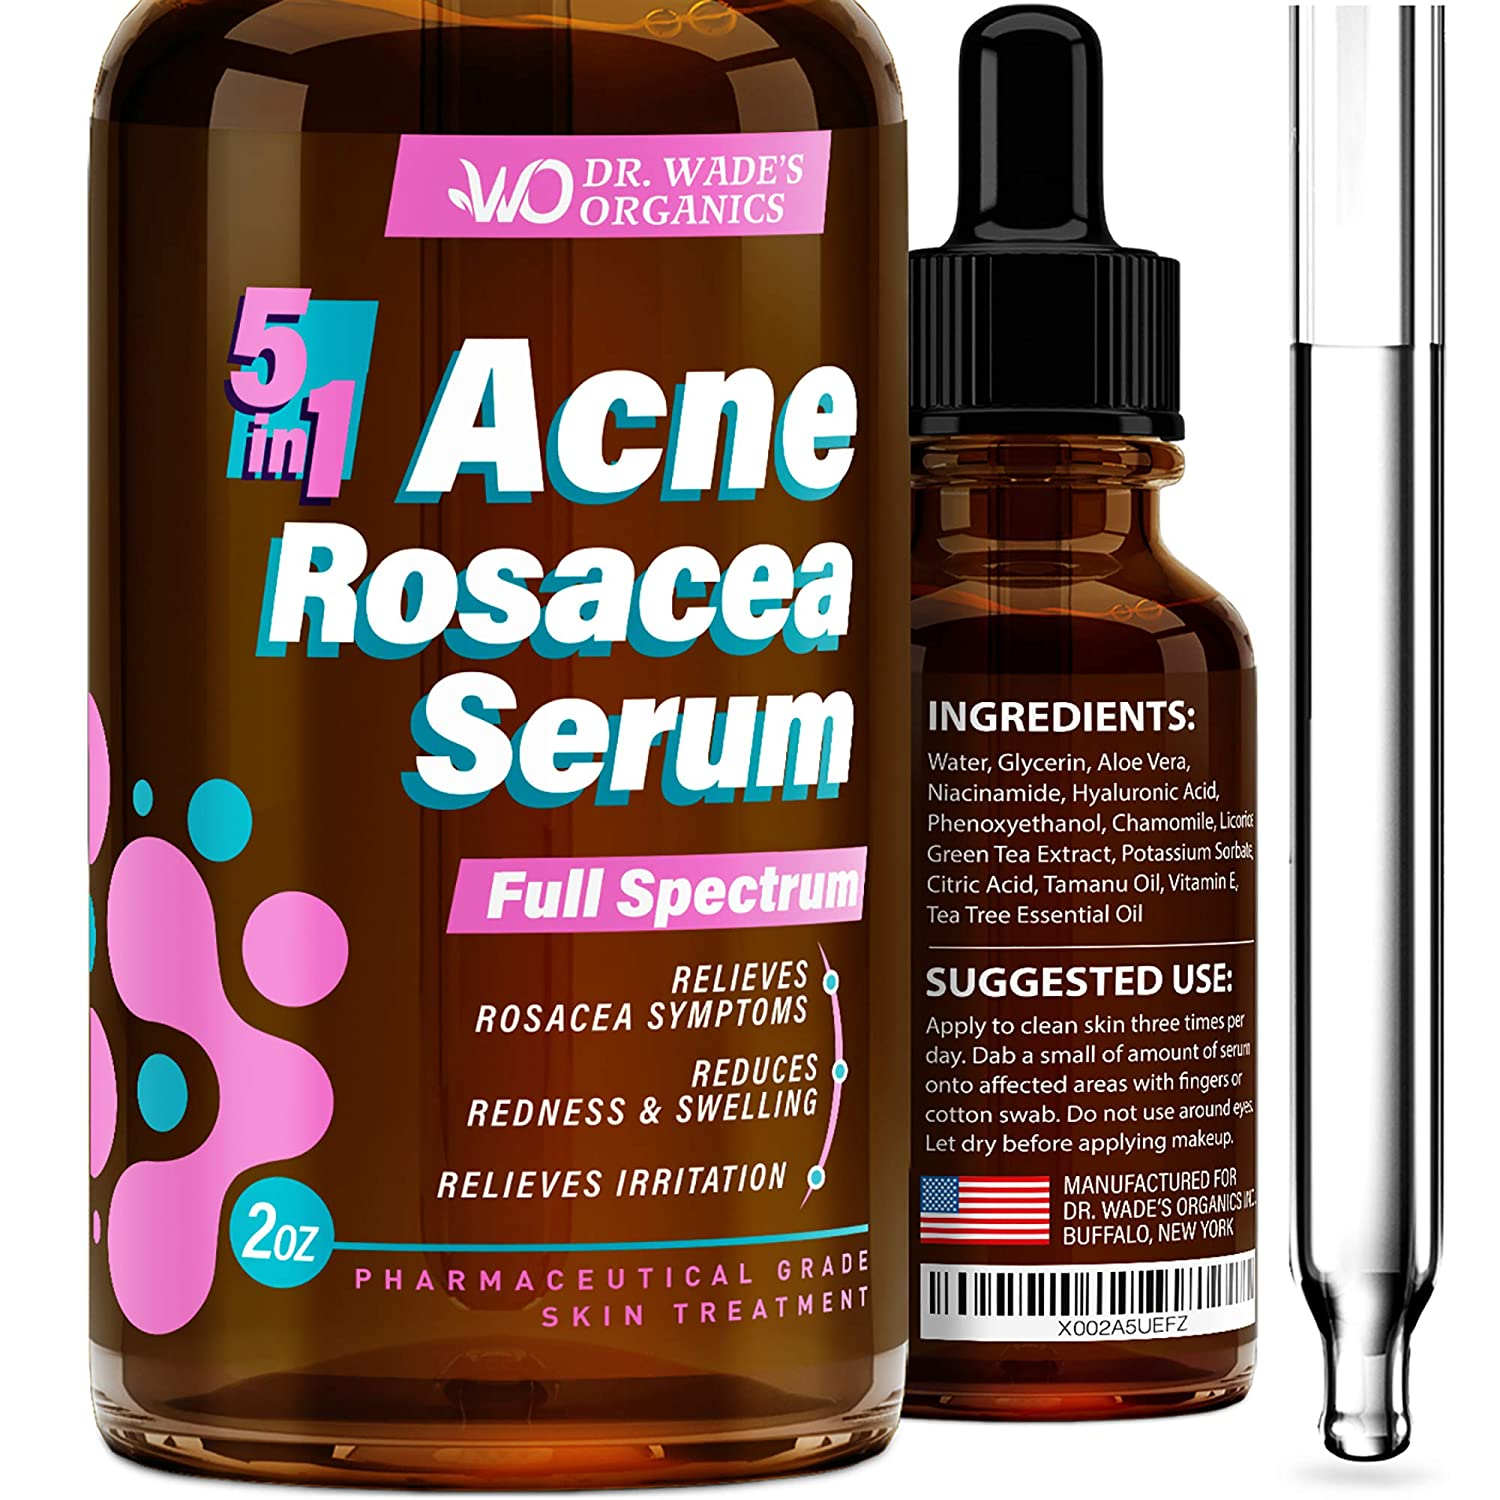 Dr. Wade's Organic 5 in 1 Acne Rosacea Serum